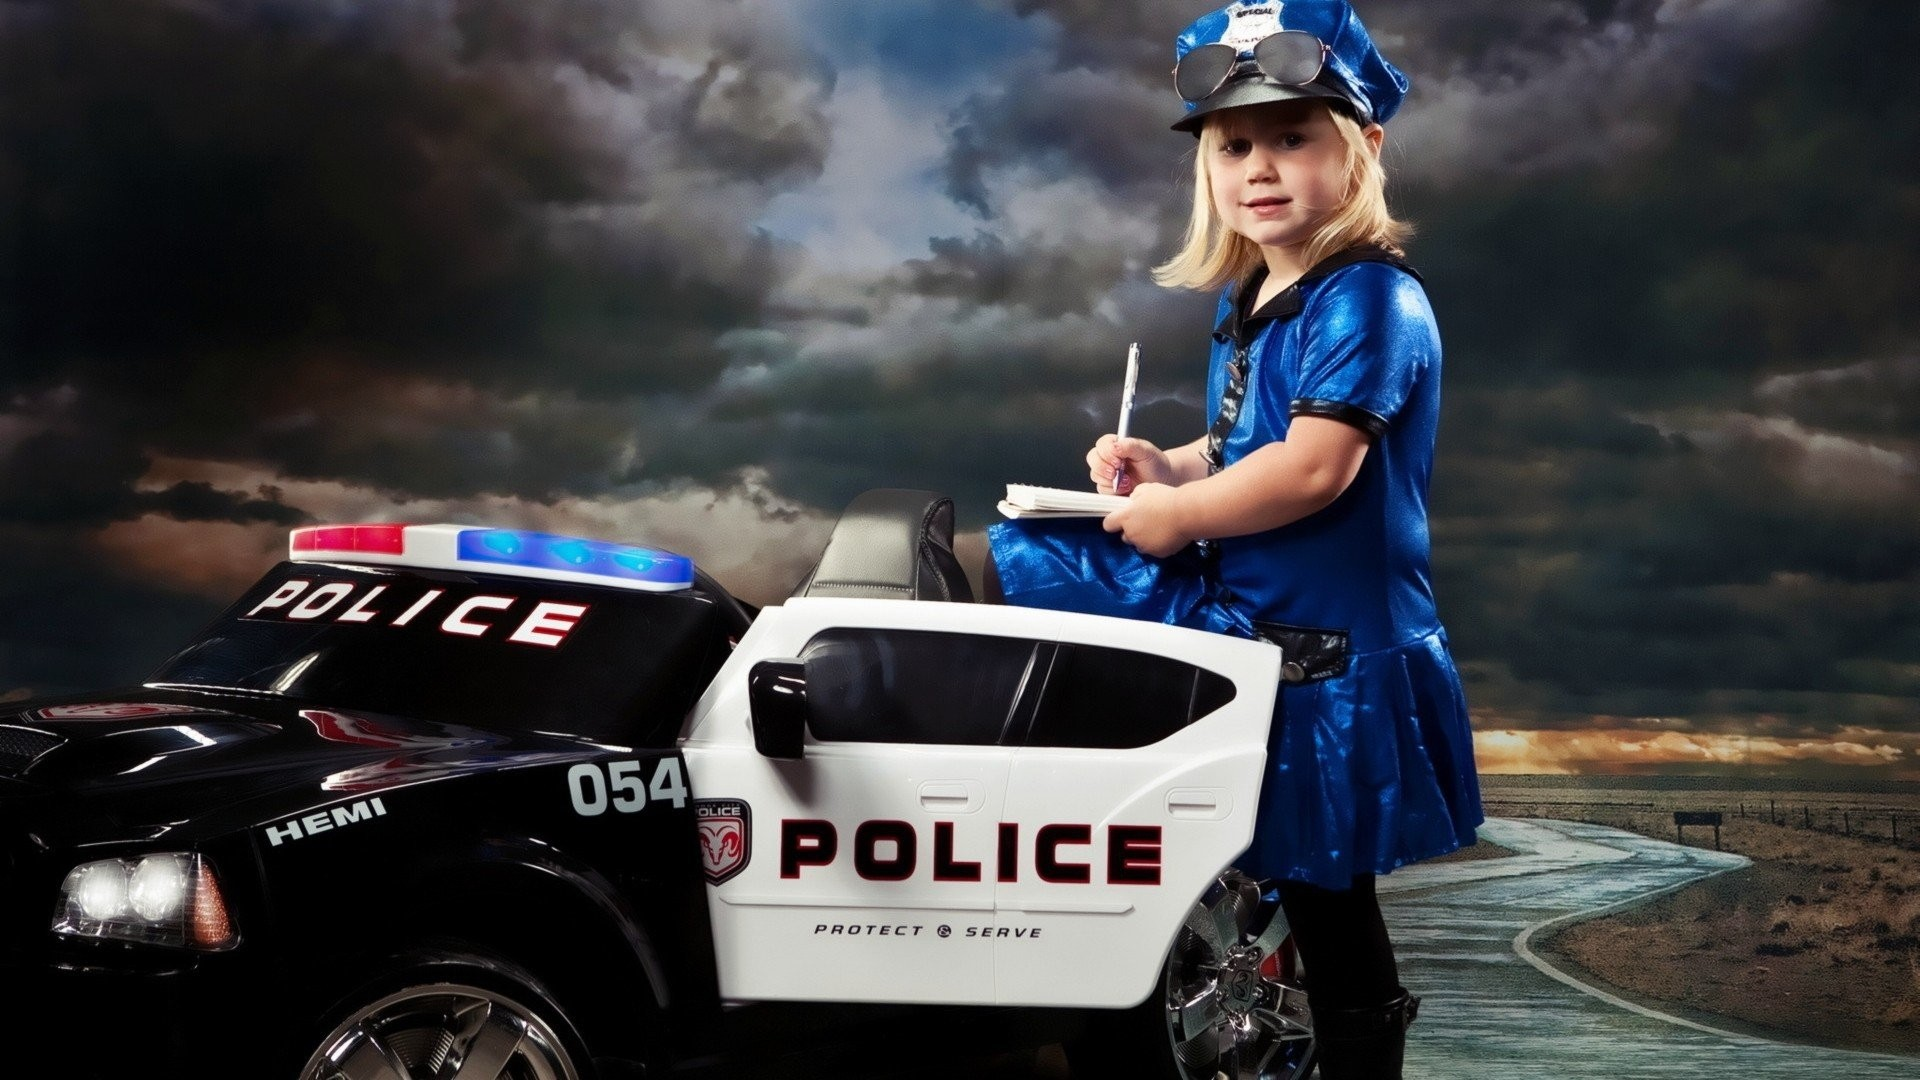 Res: 1920x1080, Women police funny police cars wallpaper |  | 252101 | WallpaperUP